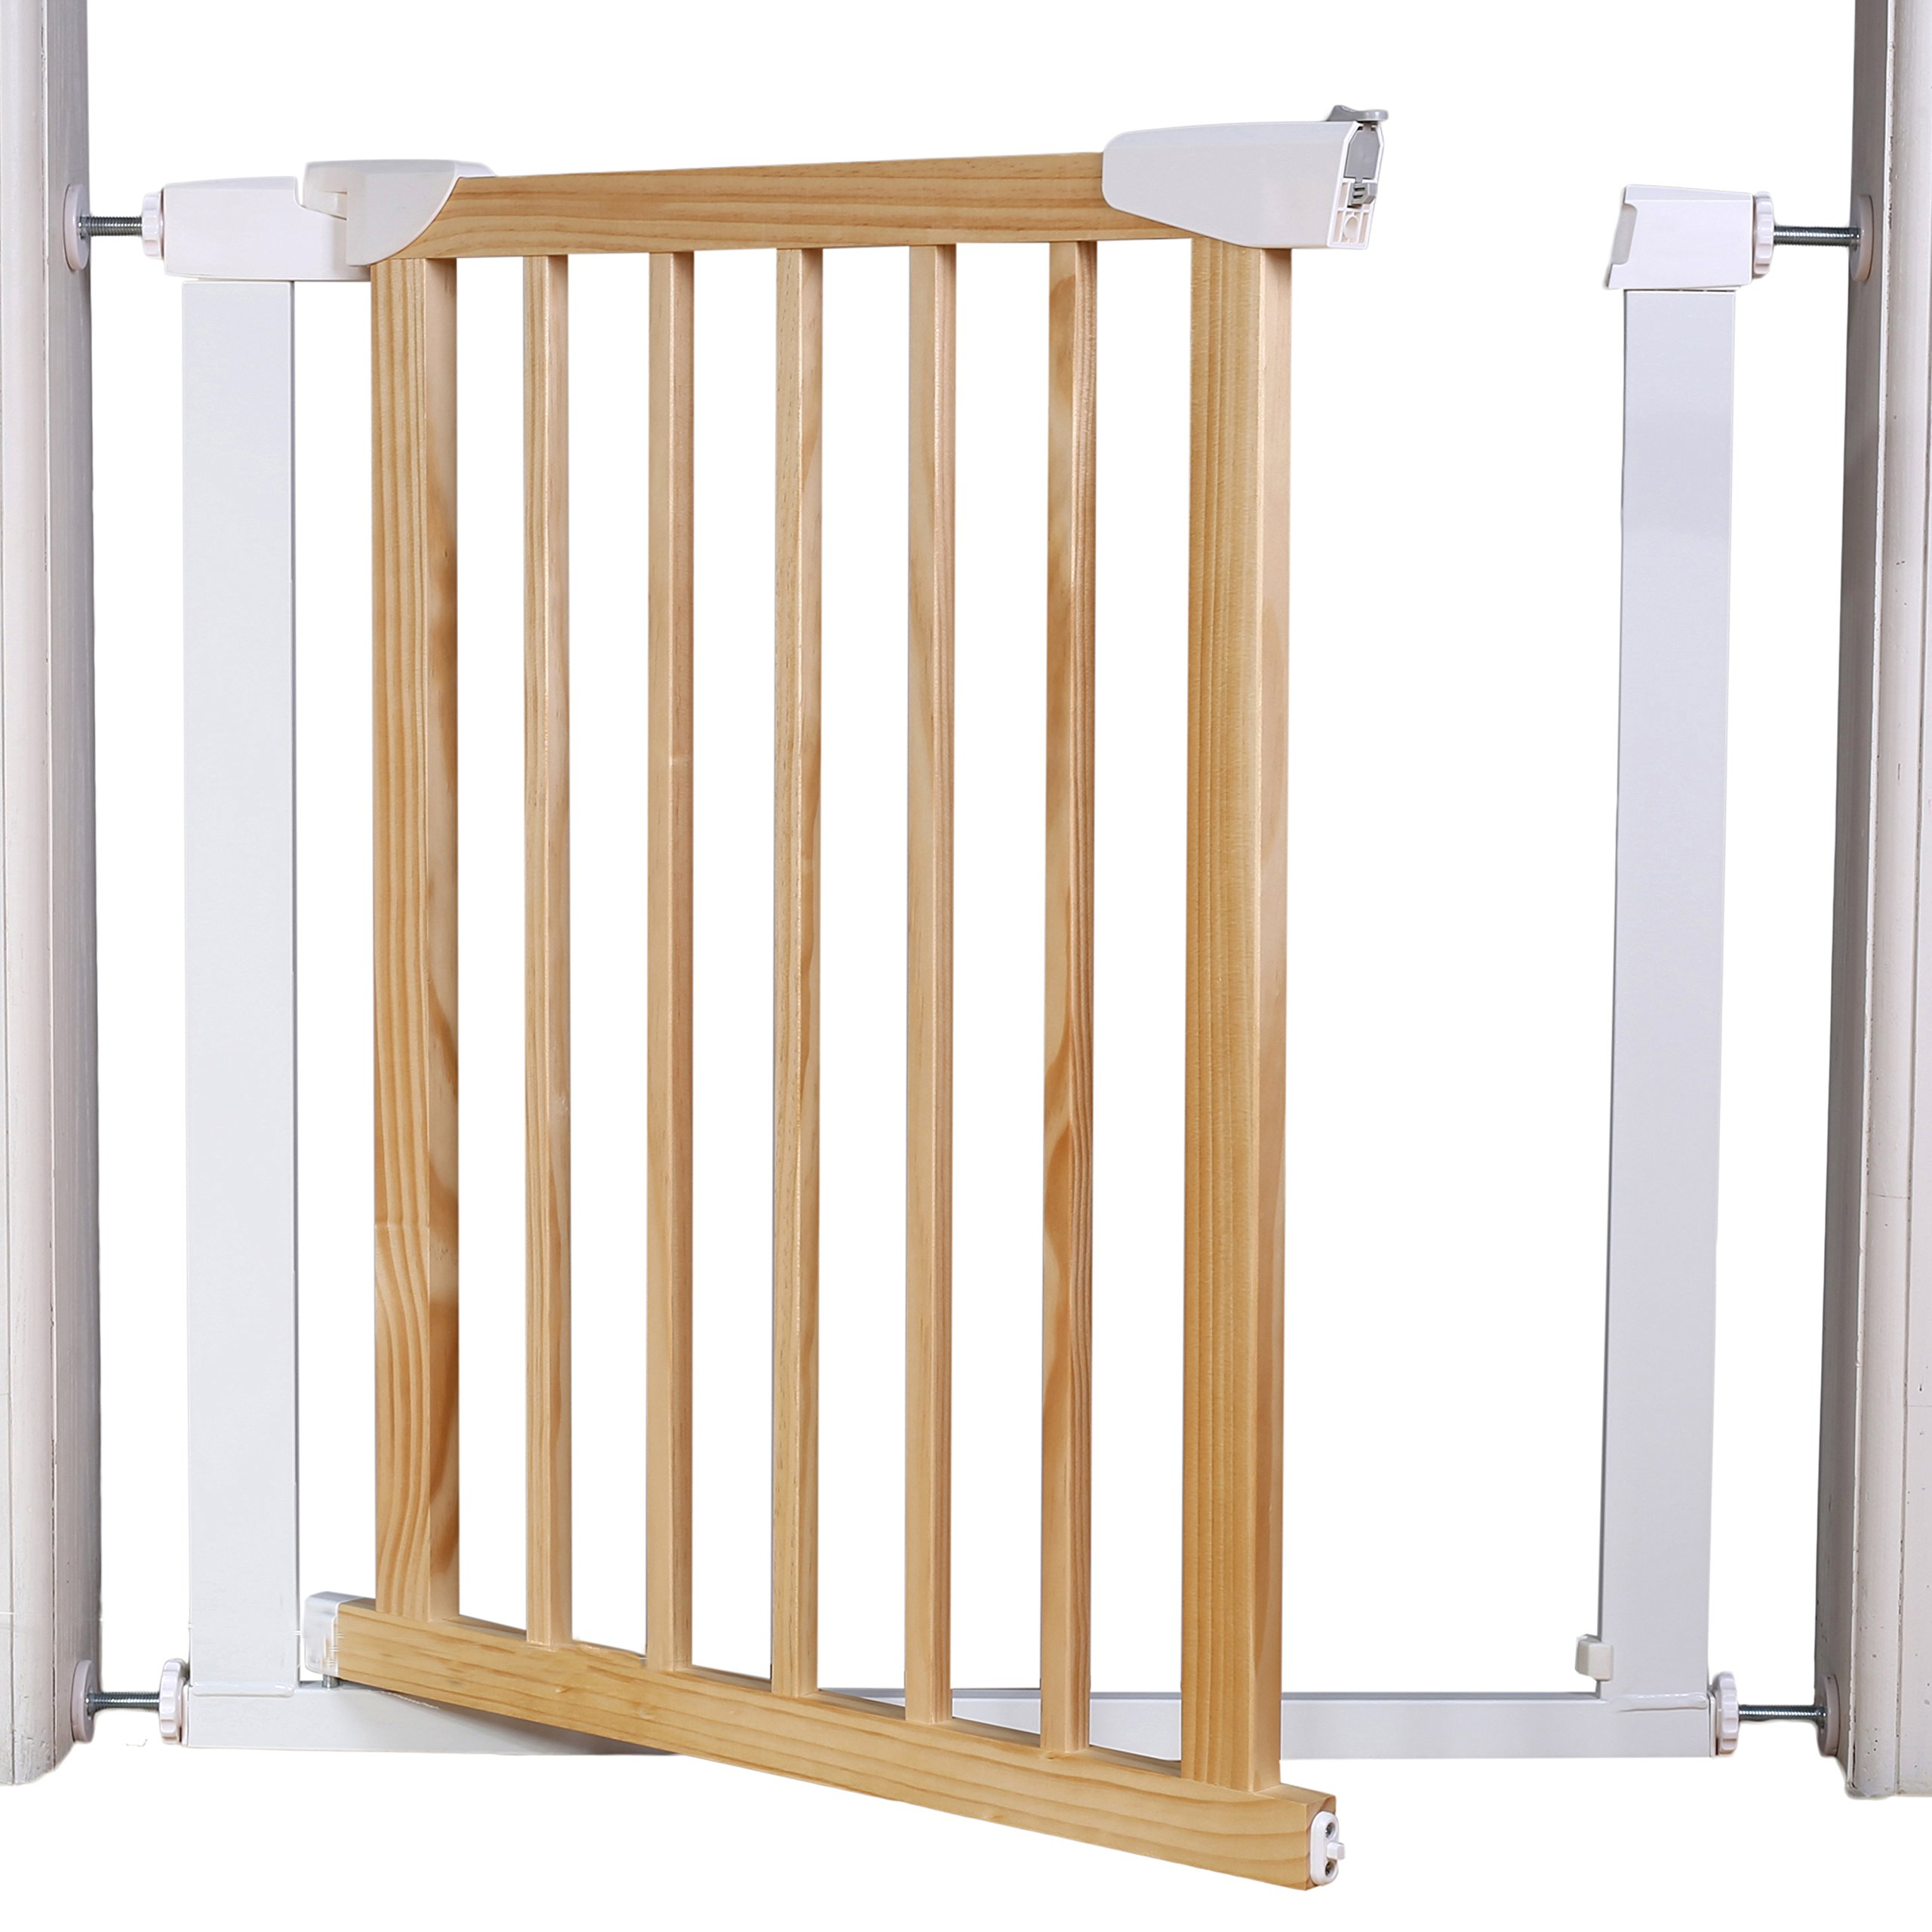 Fairy Baby Multi Use Wood & Metal Walk Thru Gate,White,Fit Spaces between 29.53''-32.28'' by Fairy Baby (Image #3)